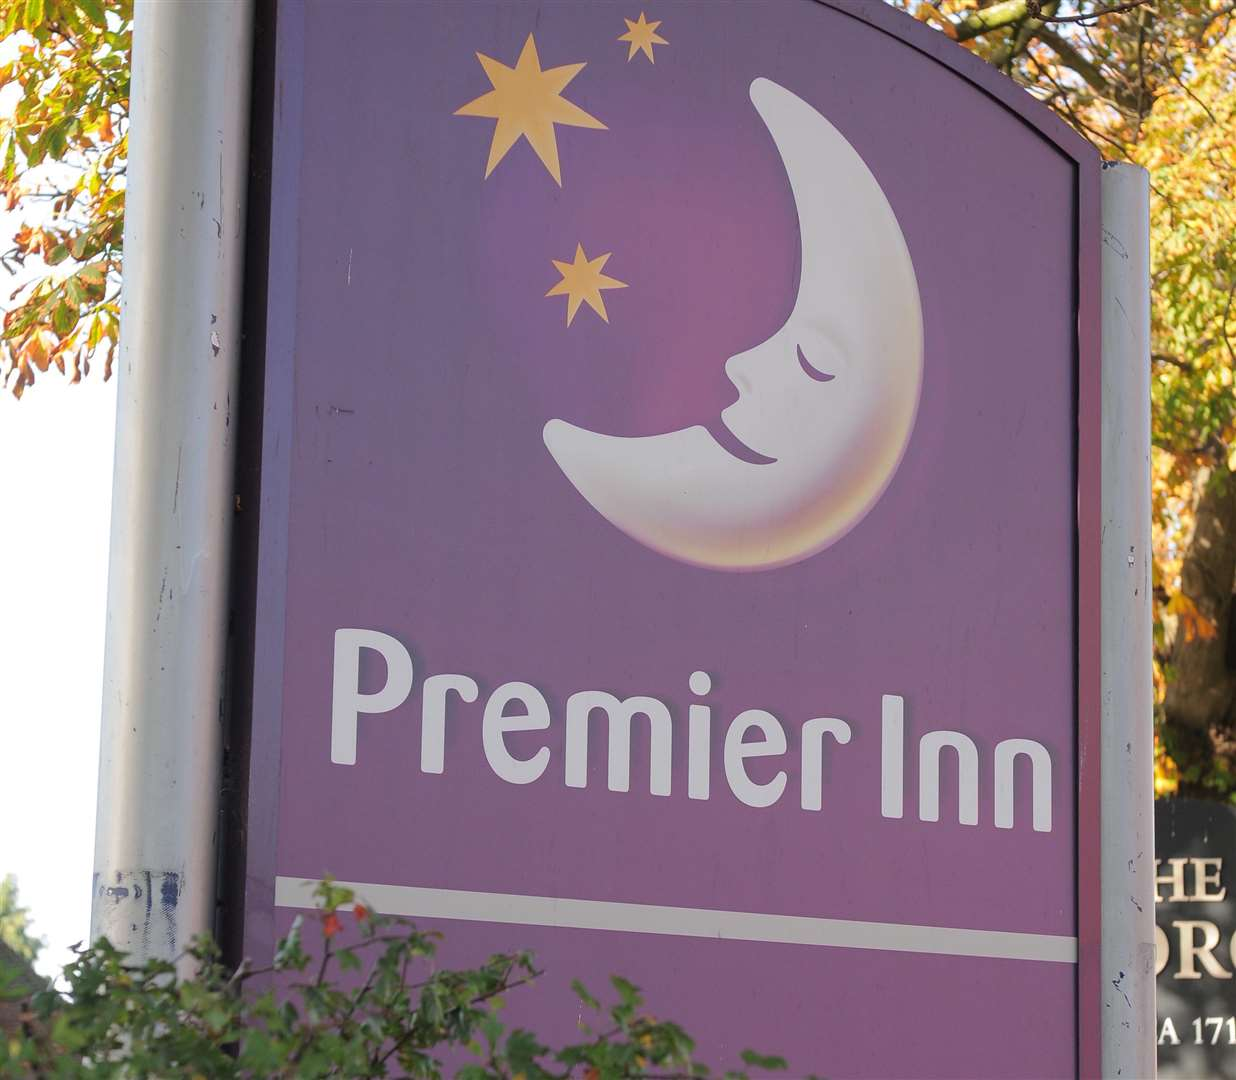 Premier Inn is welcoming families back to its hotels with a £29 deal